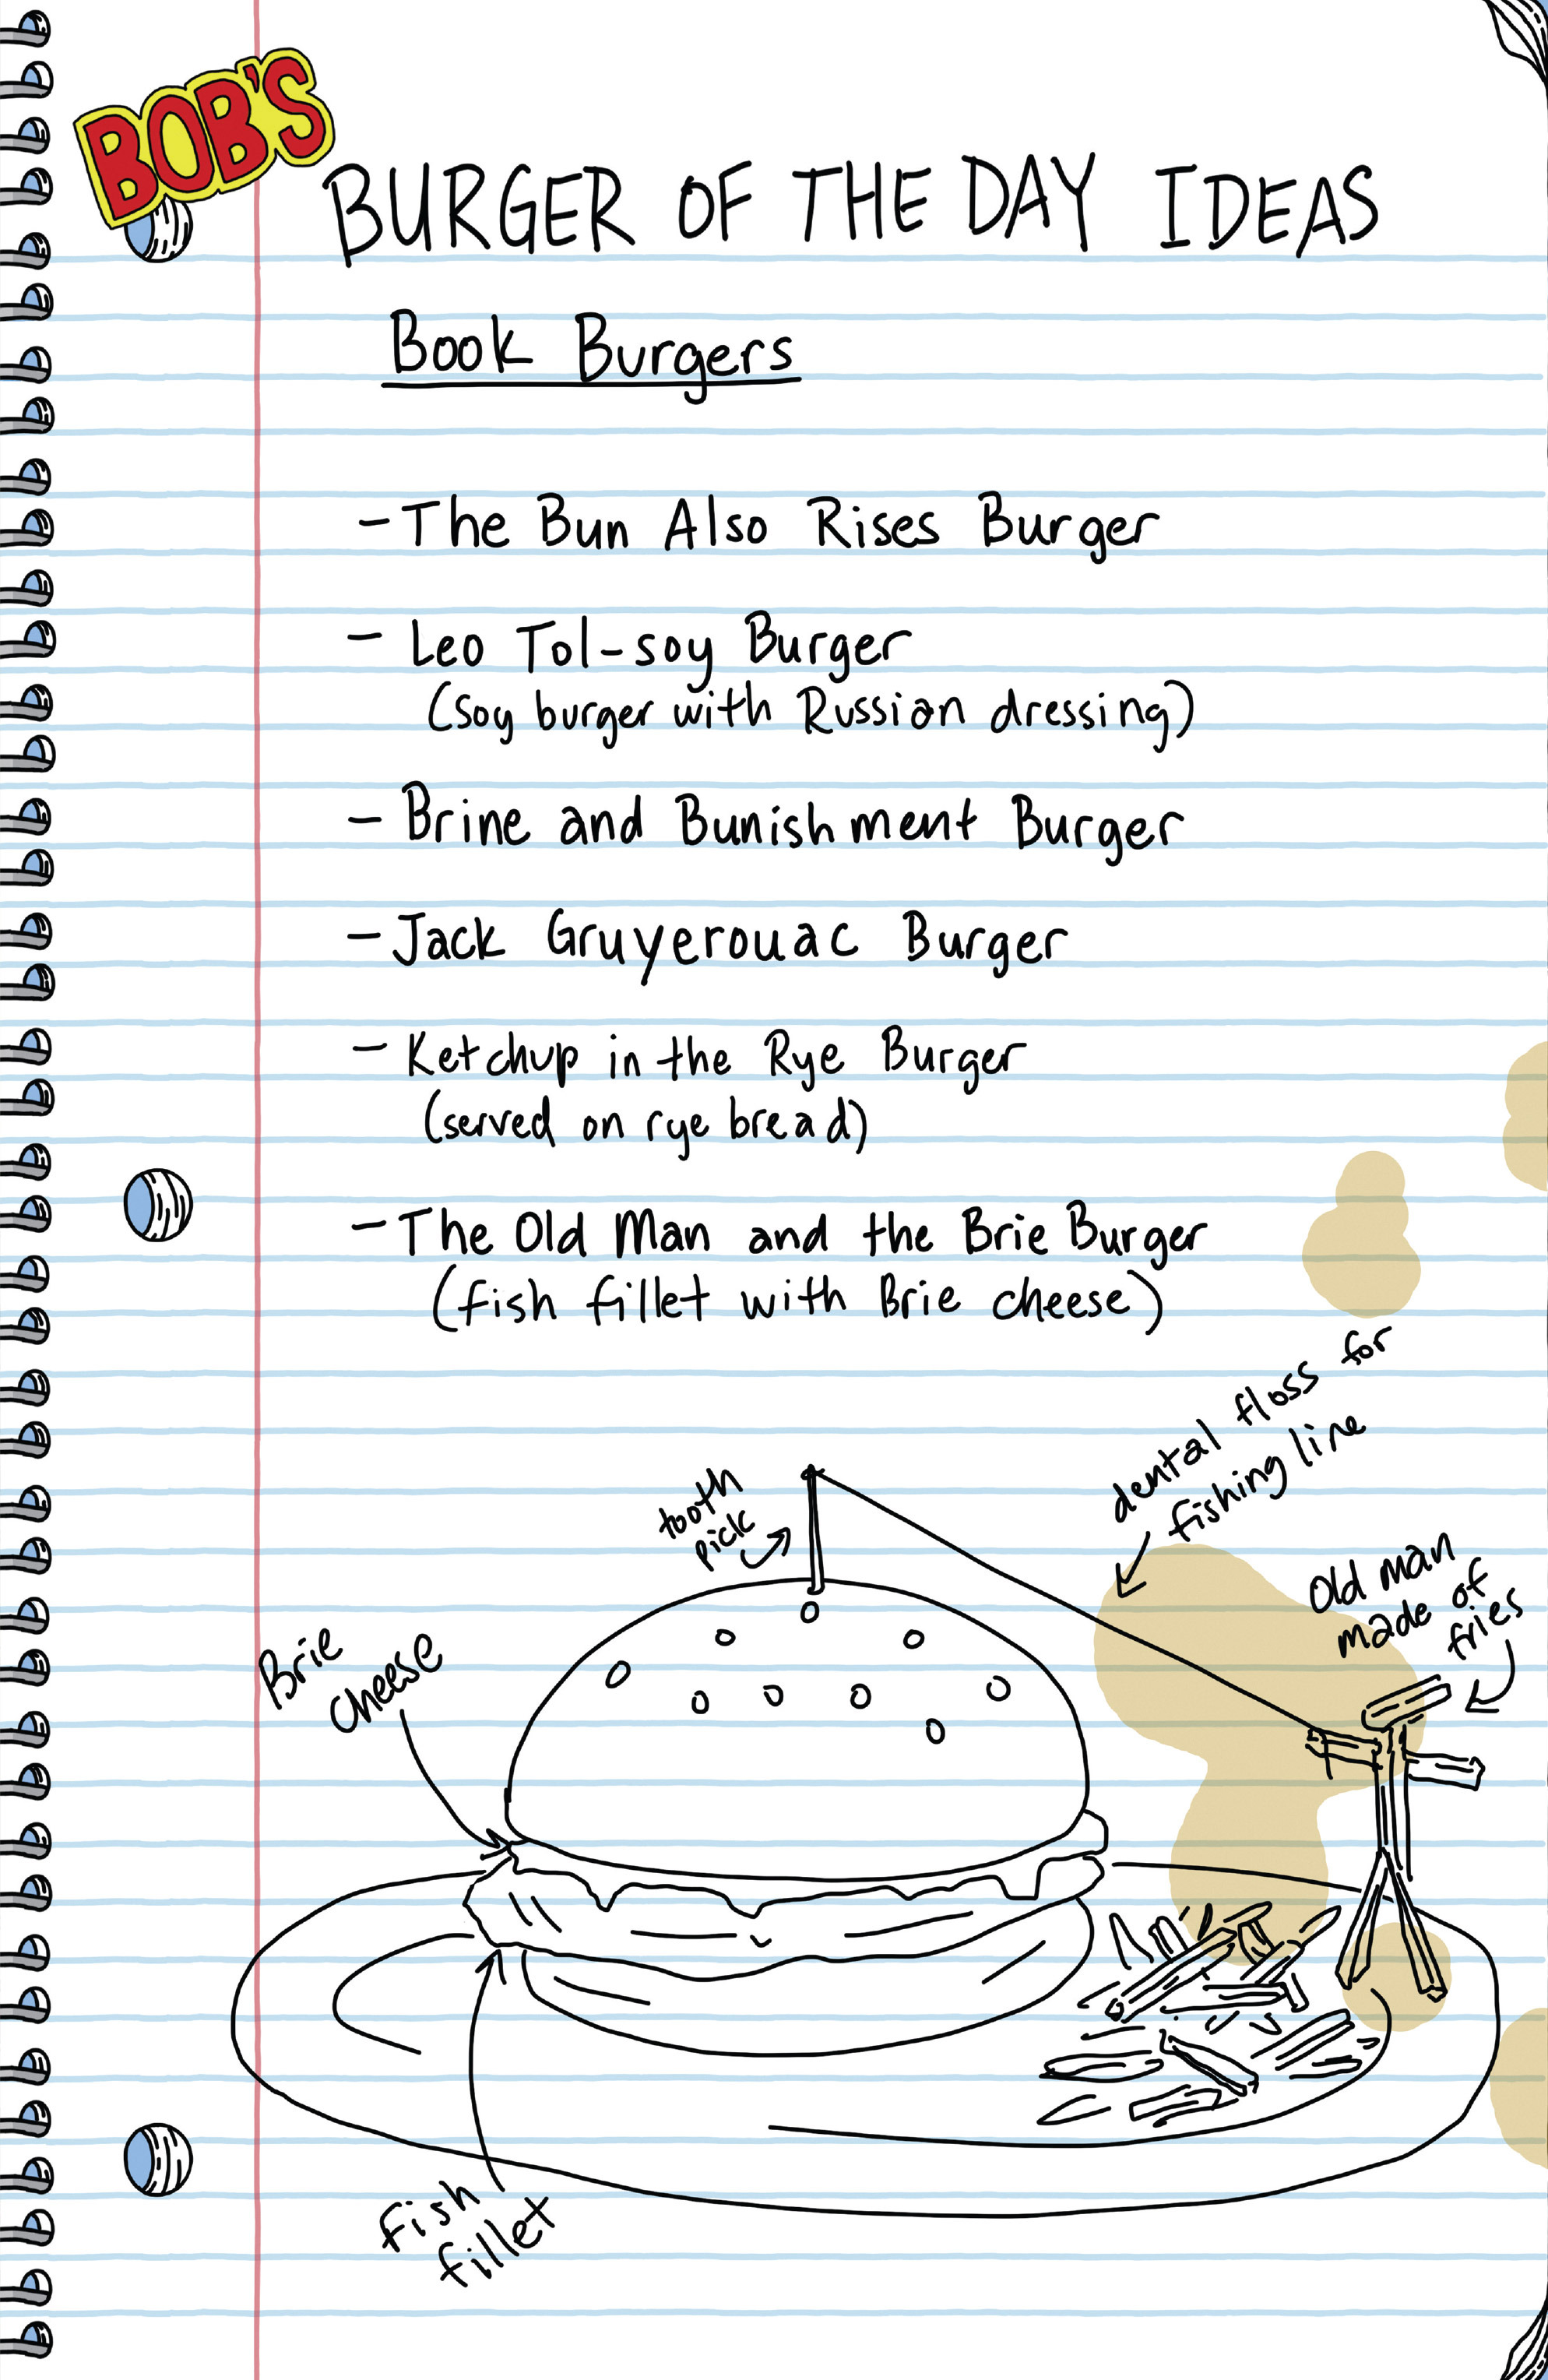 Read online Bob's Burgers (2014) comic -  Issue #5 - 9